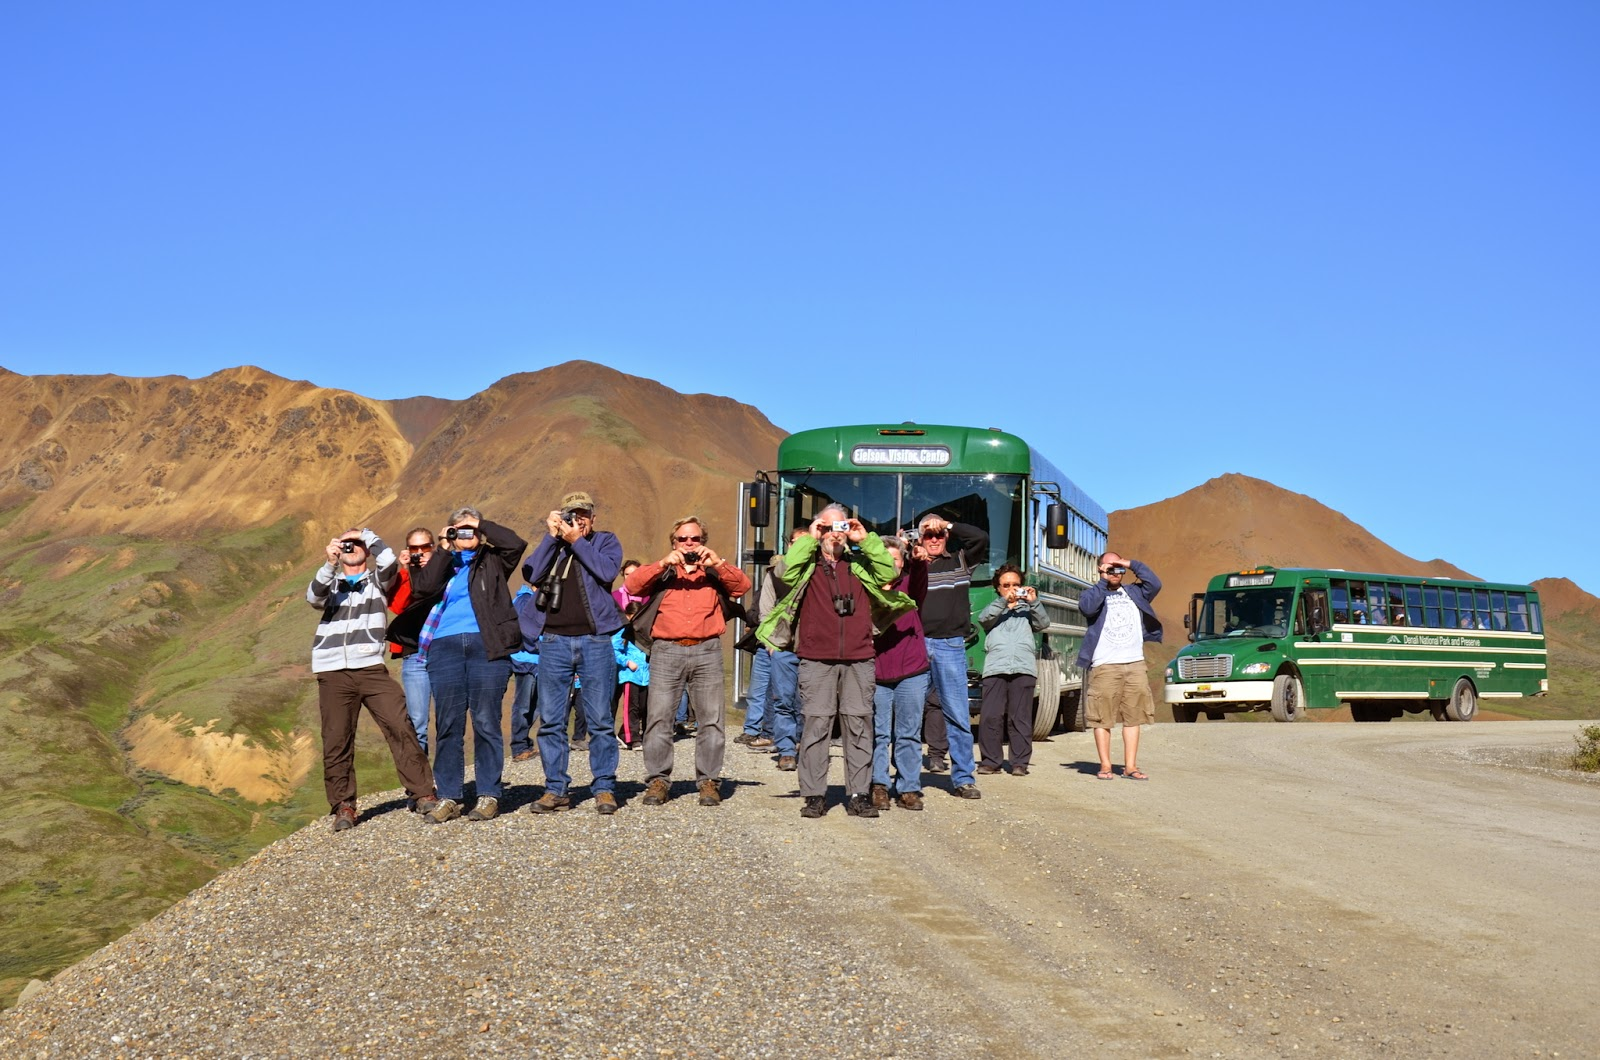 The Paparazzi of the Green Bus